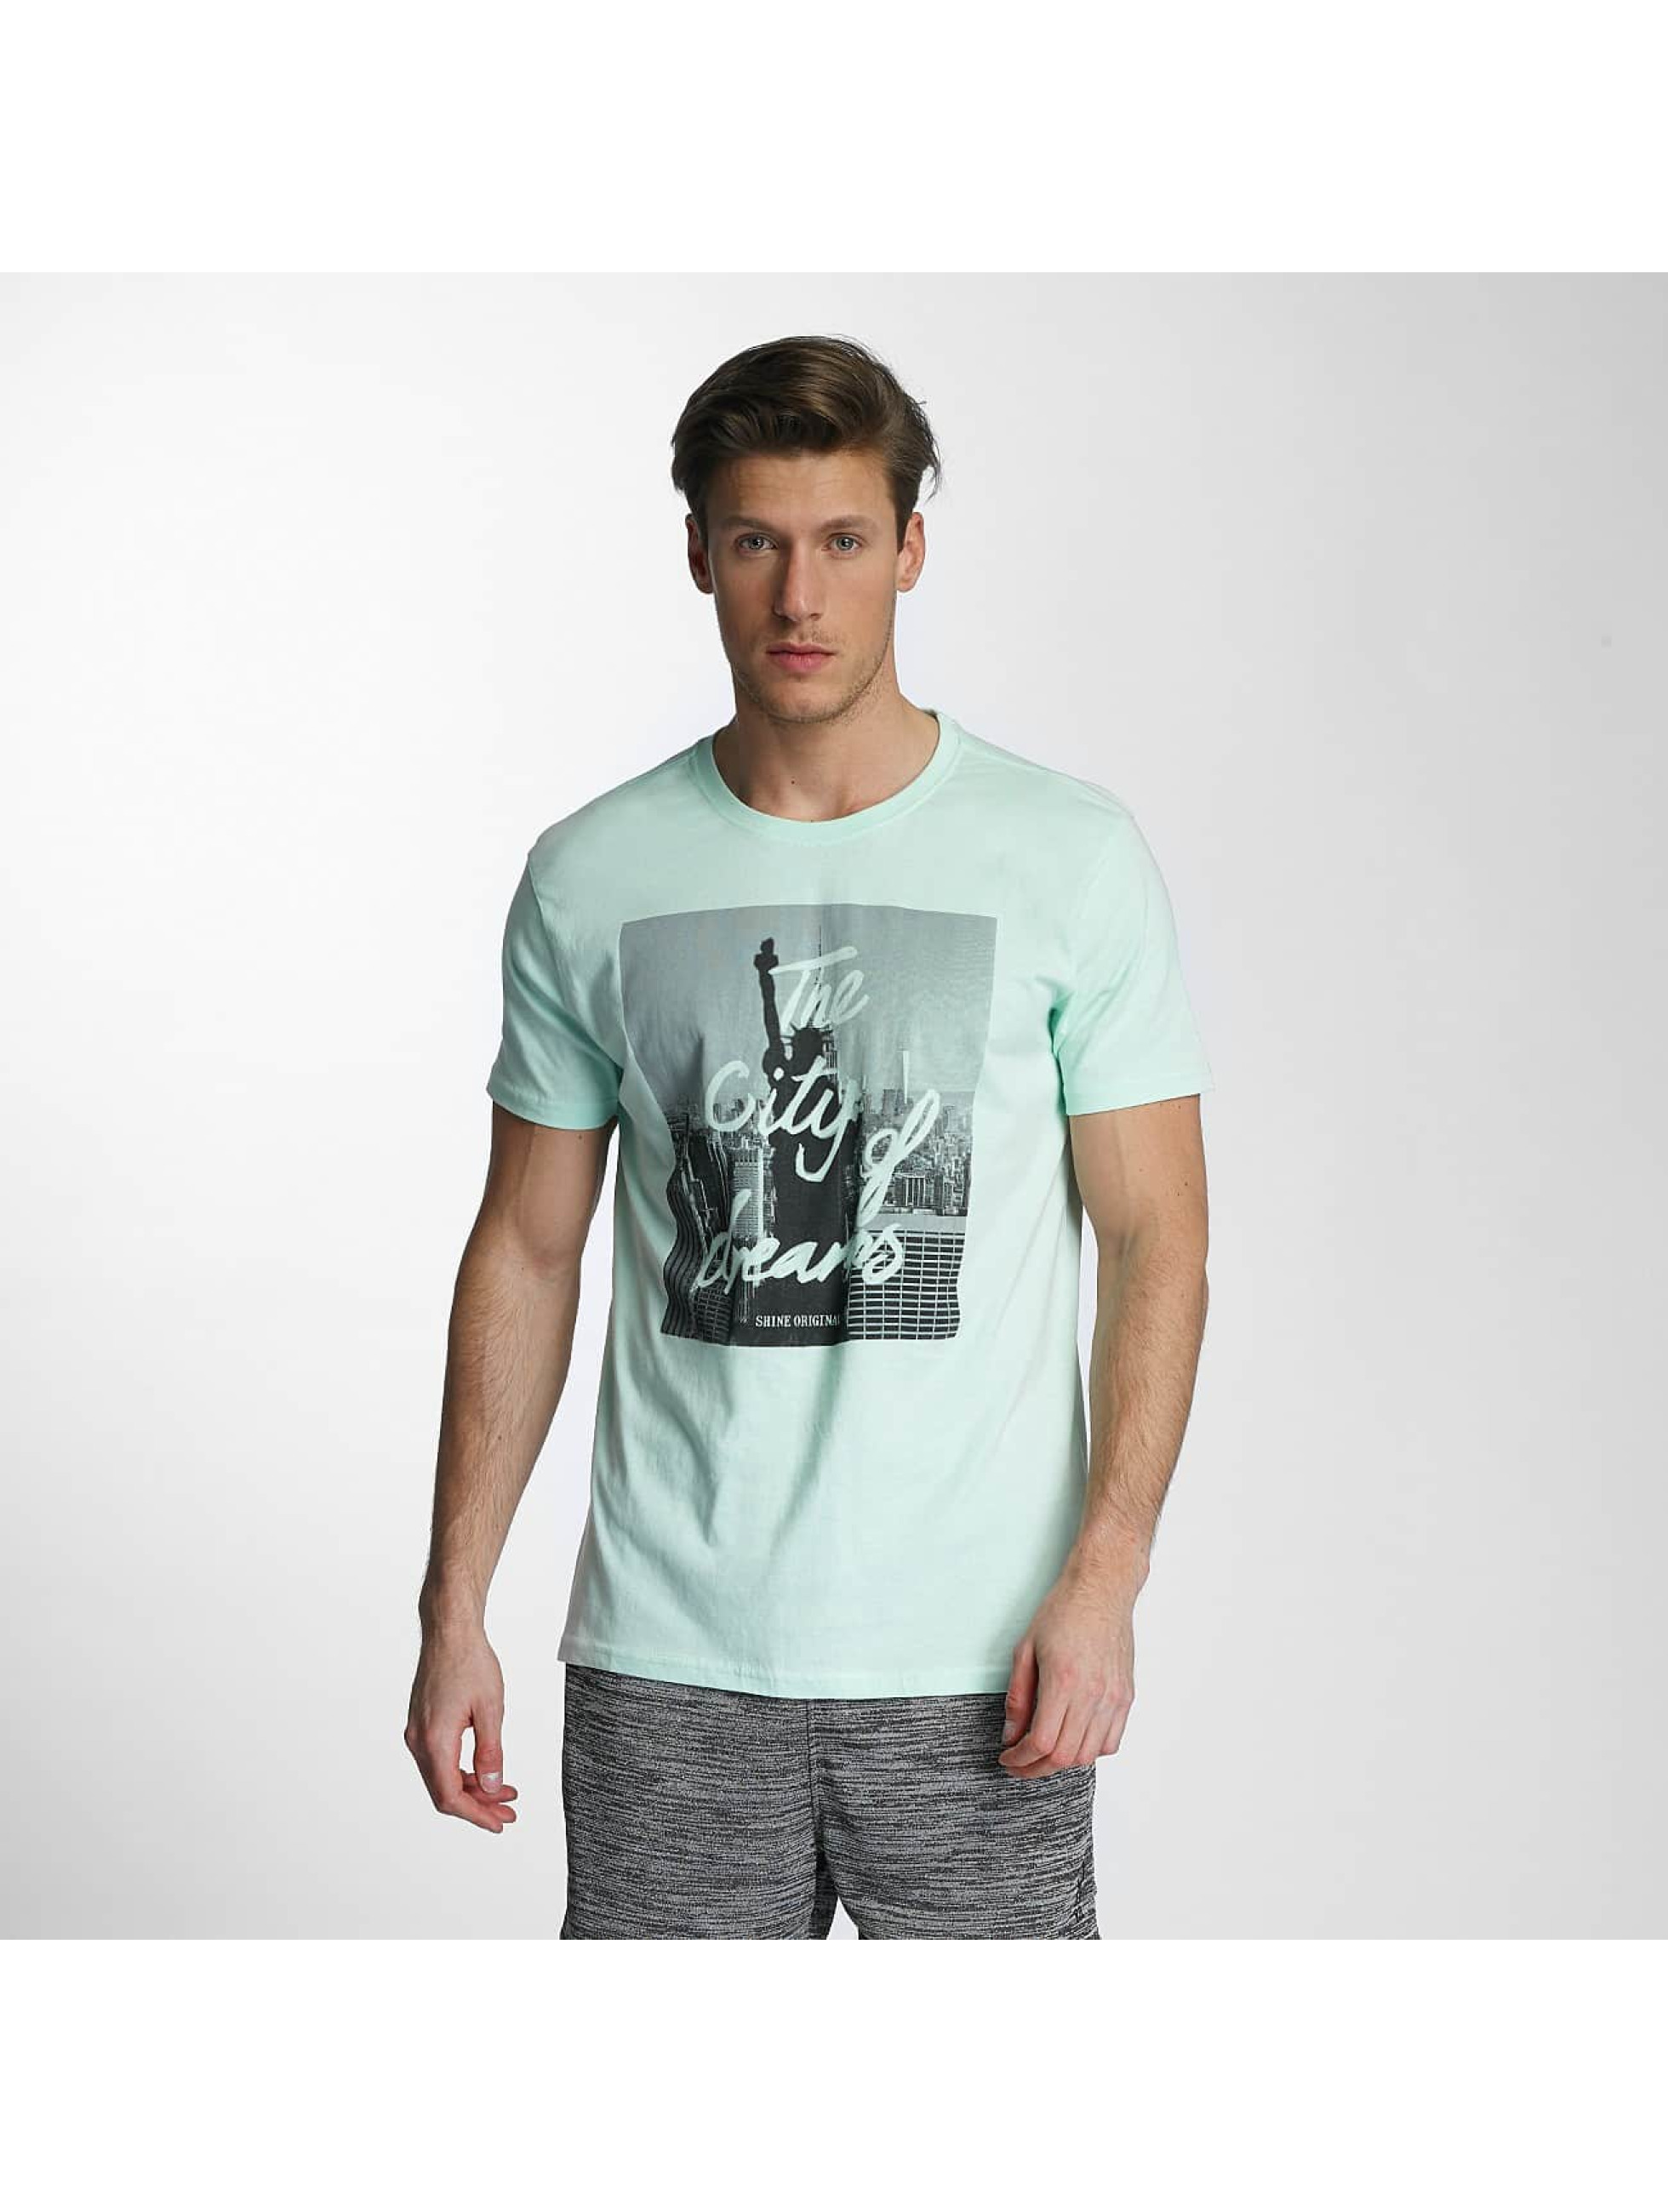 SHINE Original t-shirt City Lane groen